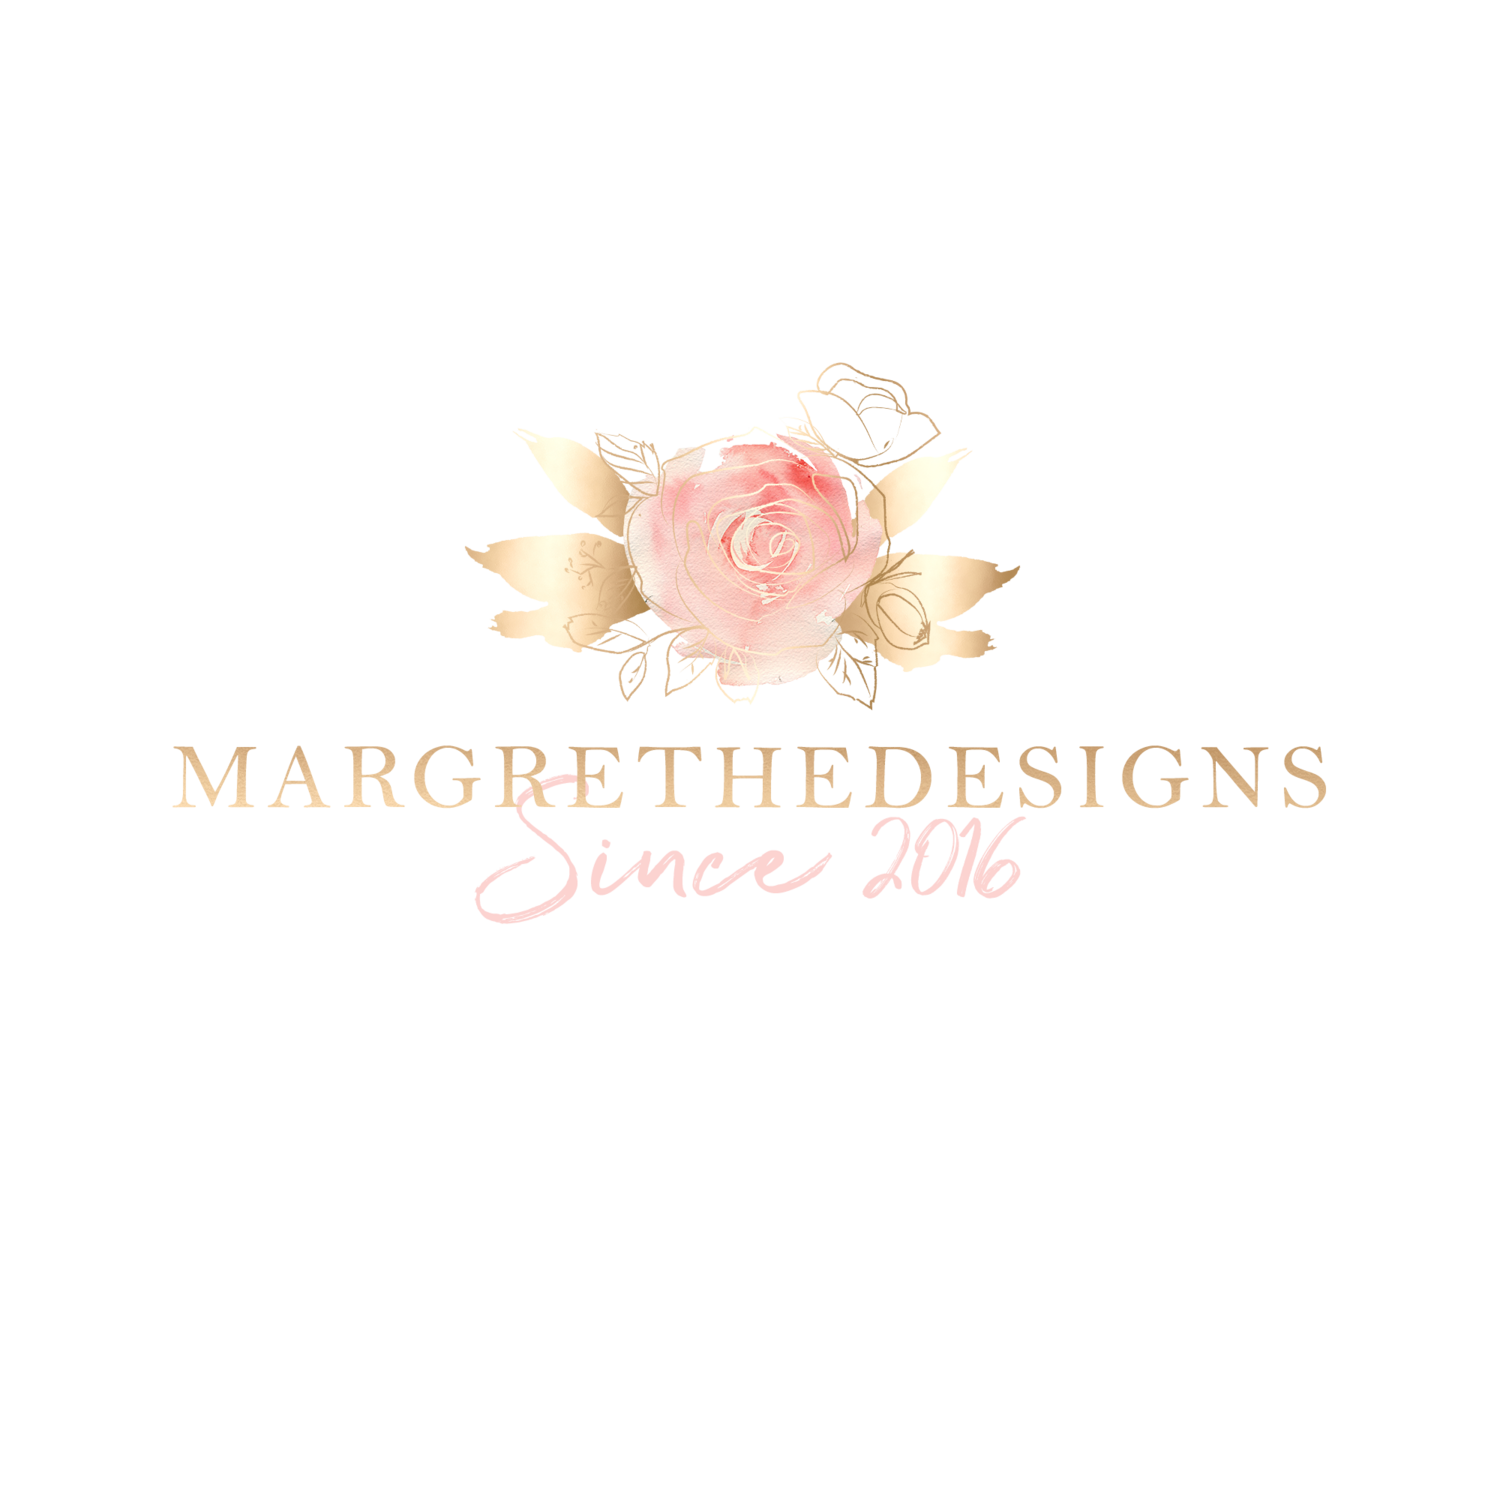 MargretheDesigns